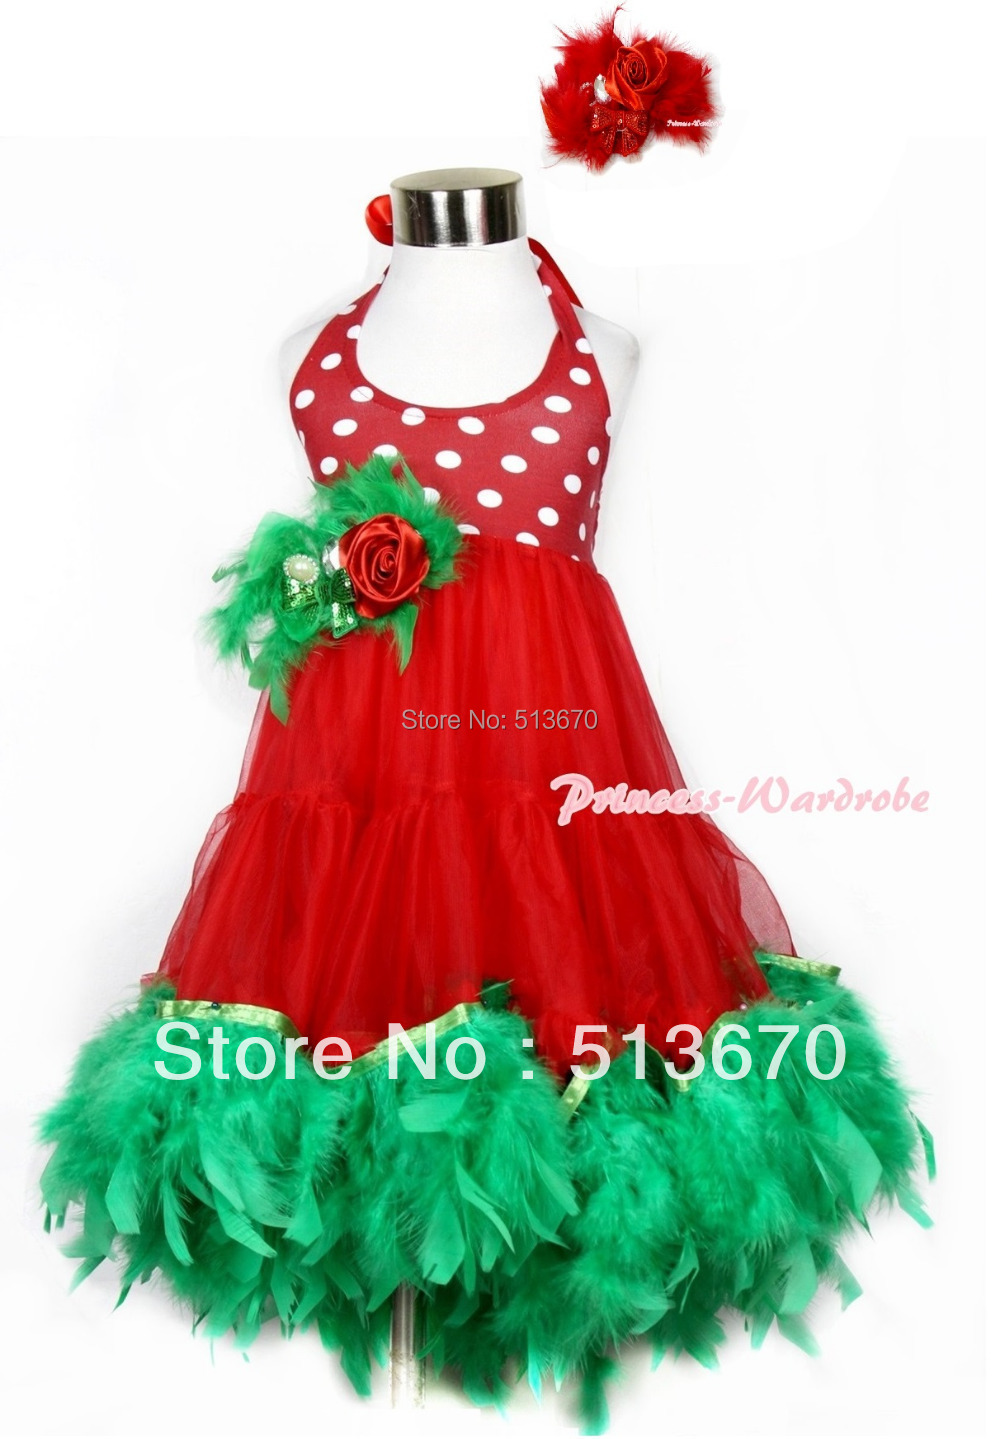 Xmas Red White Polka Dots ONE-PIECE Petti Dress Kelly Green Posh Feather & Red Feather Rose Bow With Accessory 2PC Set MALP26-2 red white polka